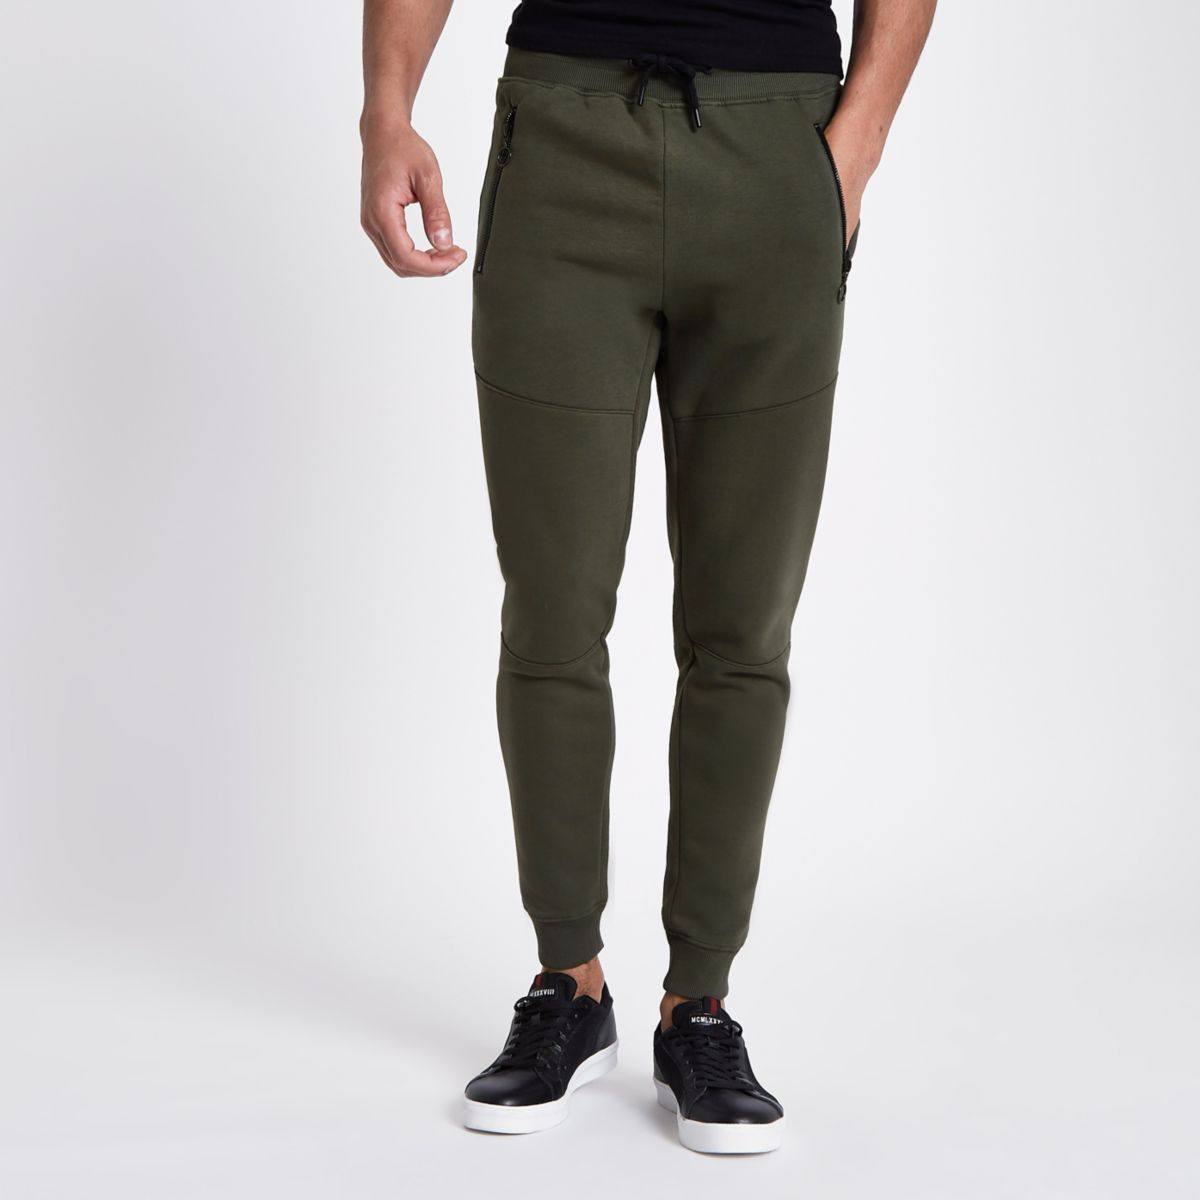 Khaki green jersey muscle fit joggers